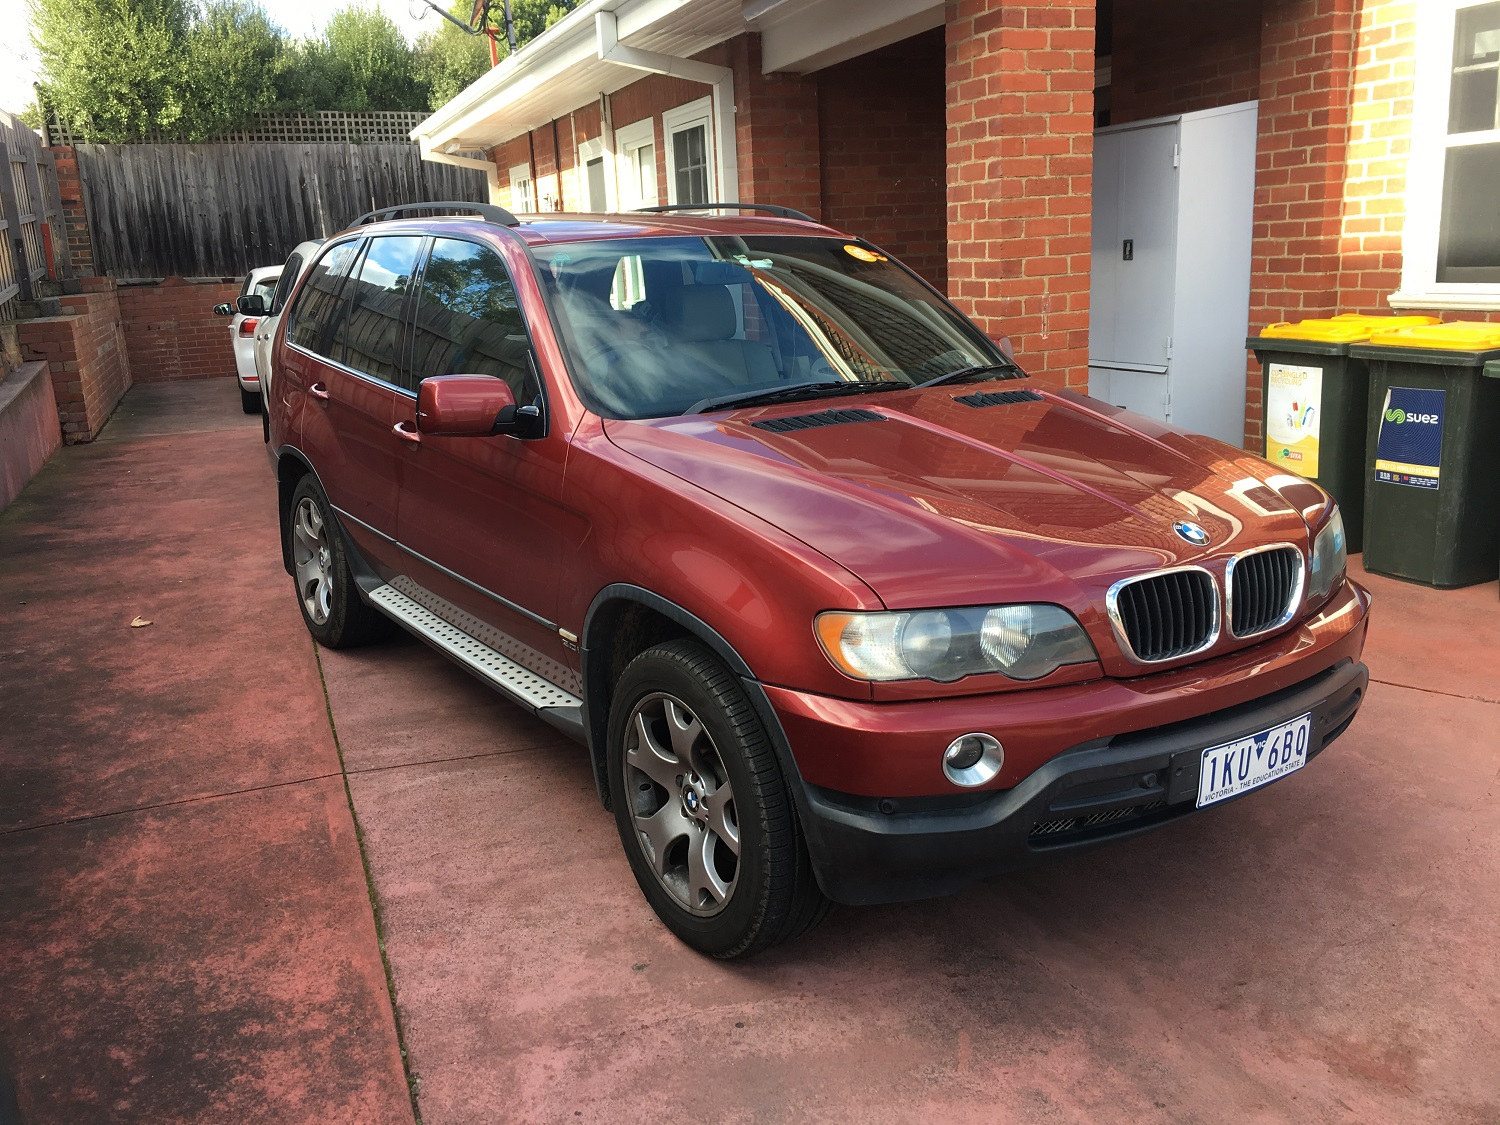 Picture of Darryl's 2002 BMW X5